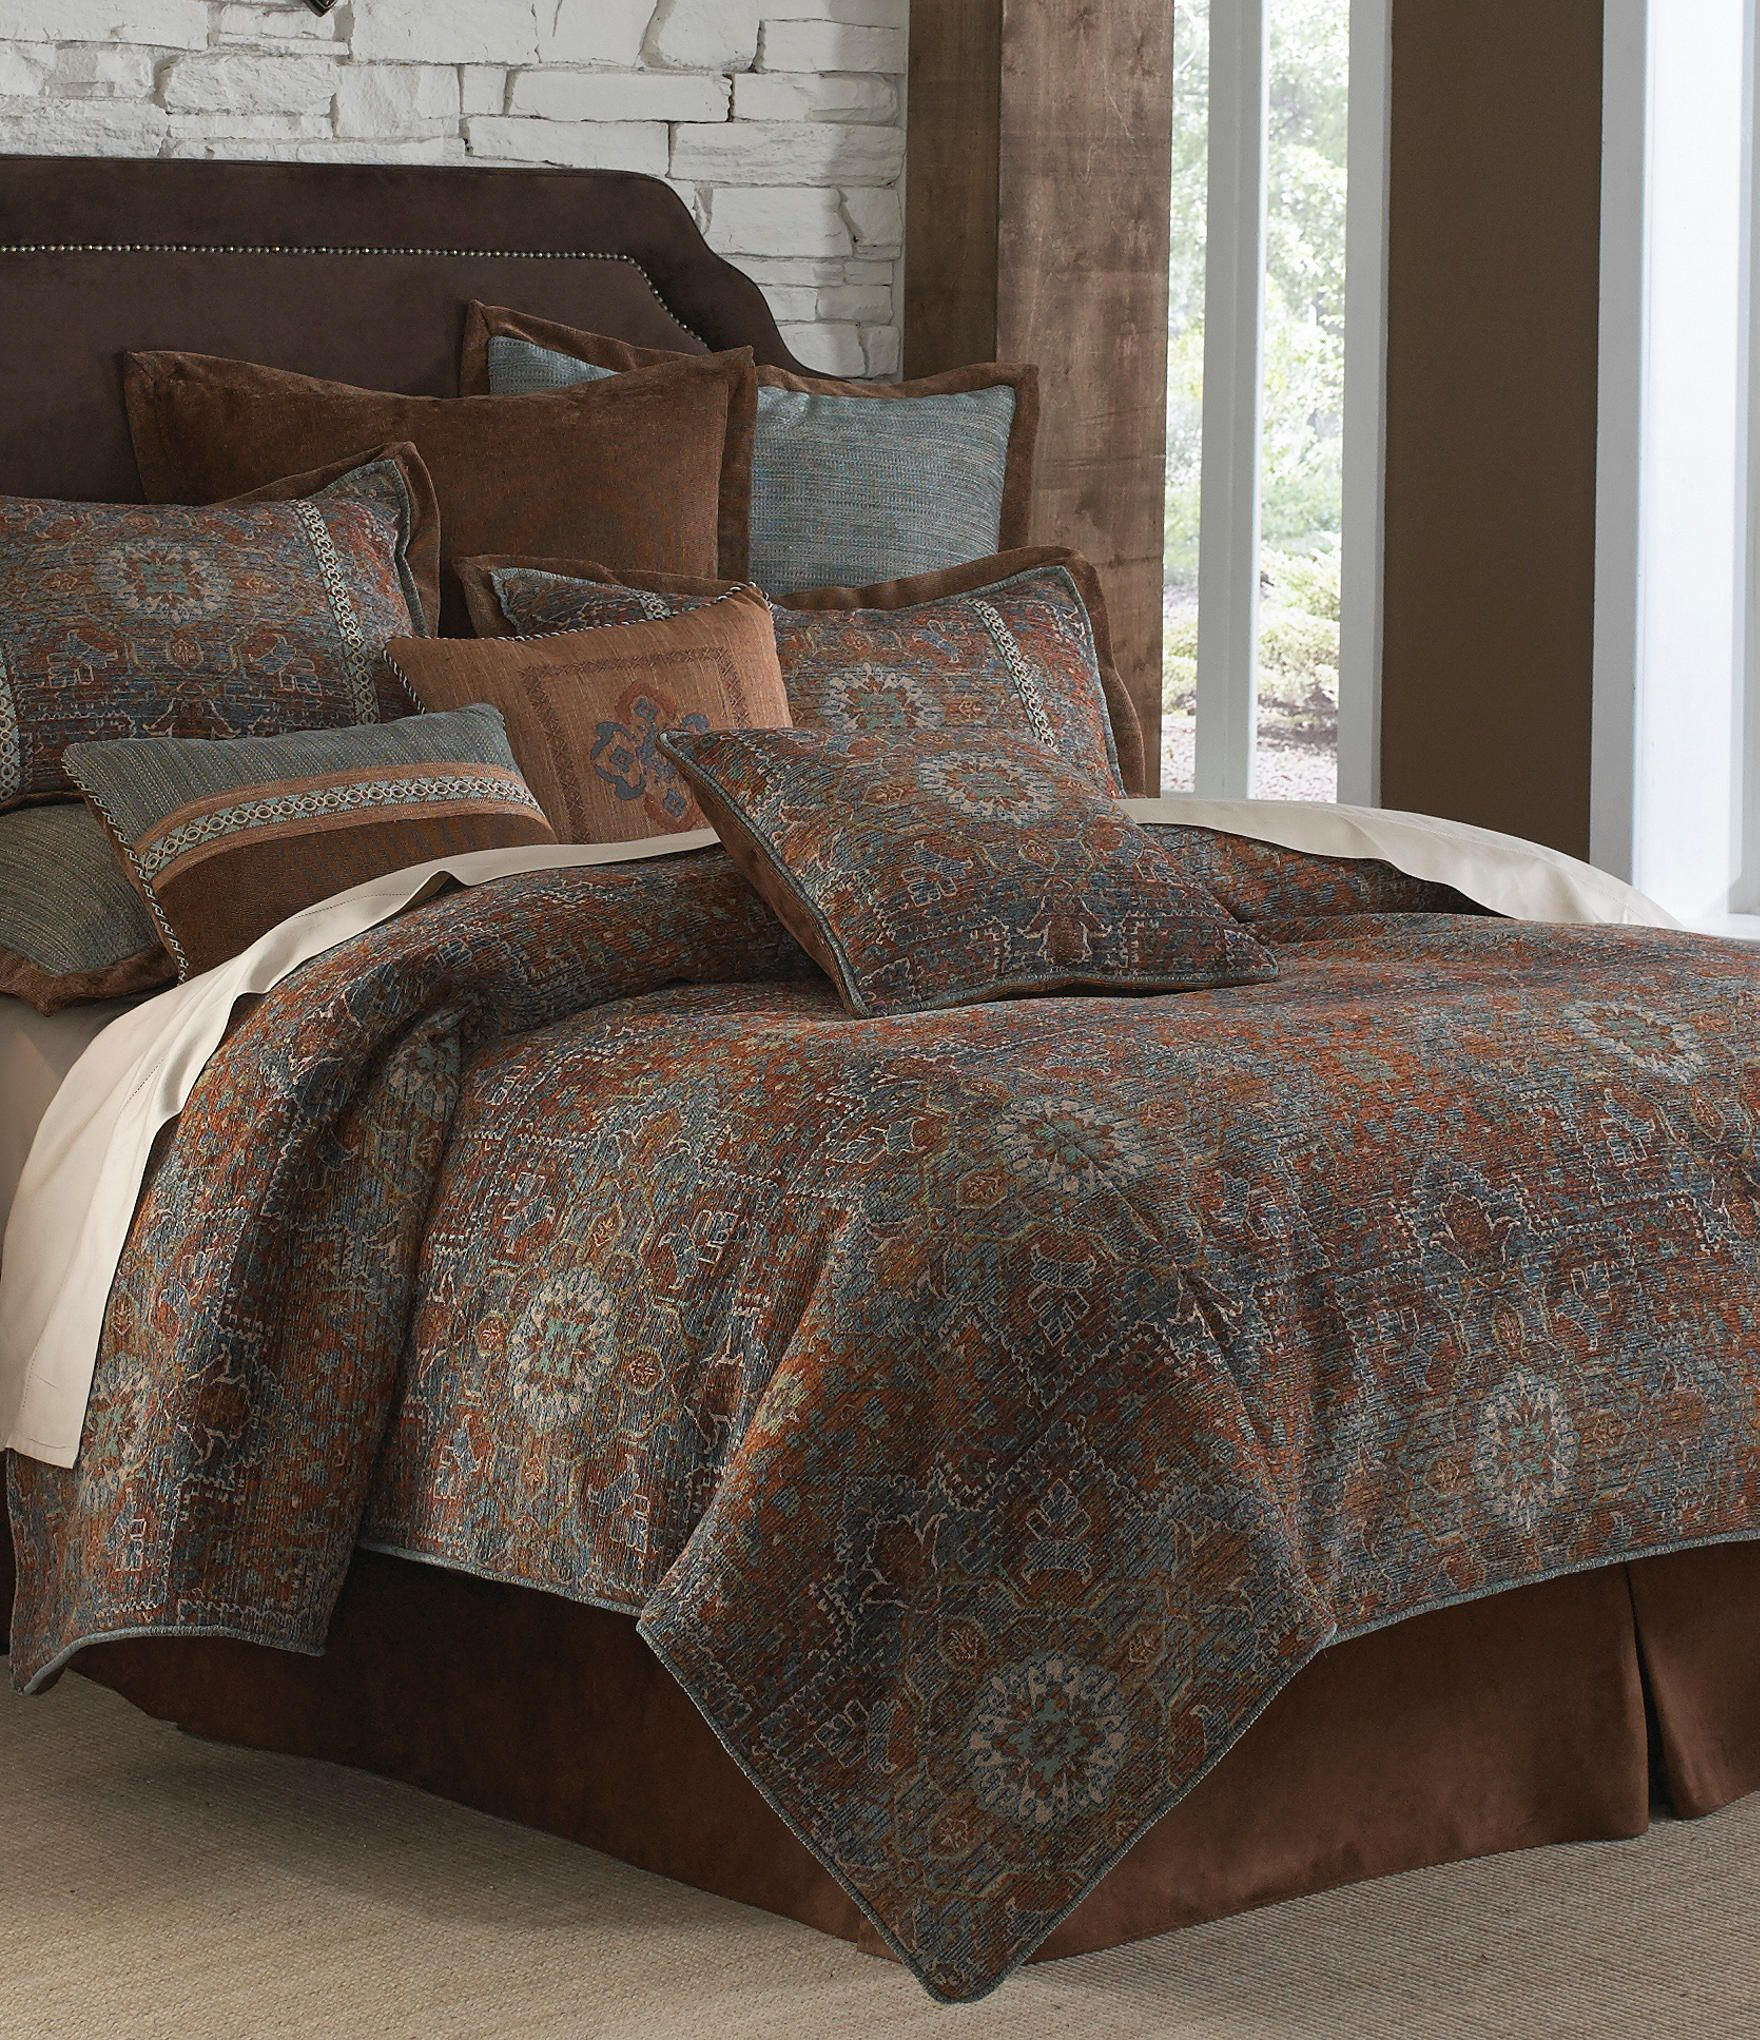 Bold Hues Combine Upon Caracas Southwest Comforter Bedding By Veratex(R).  Oversized Comforter Features A Beautifully Intricate Southwestern Design.